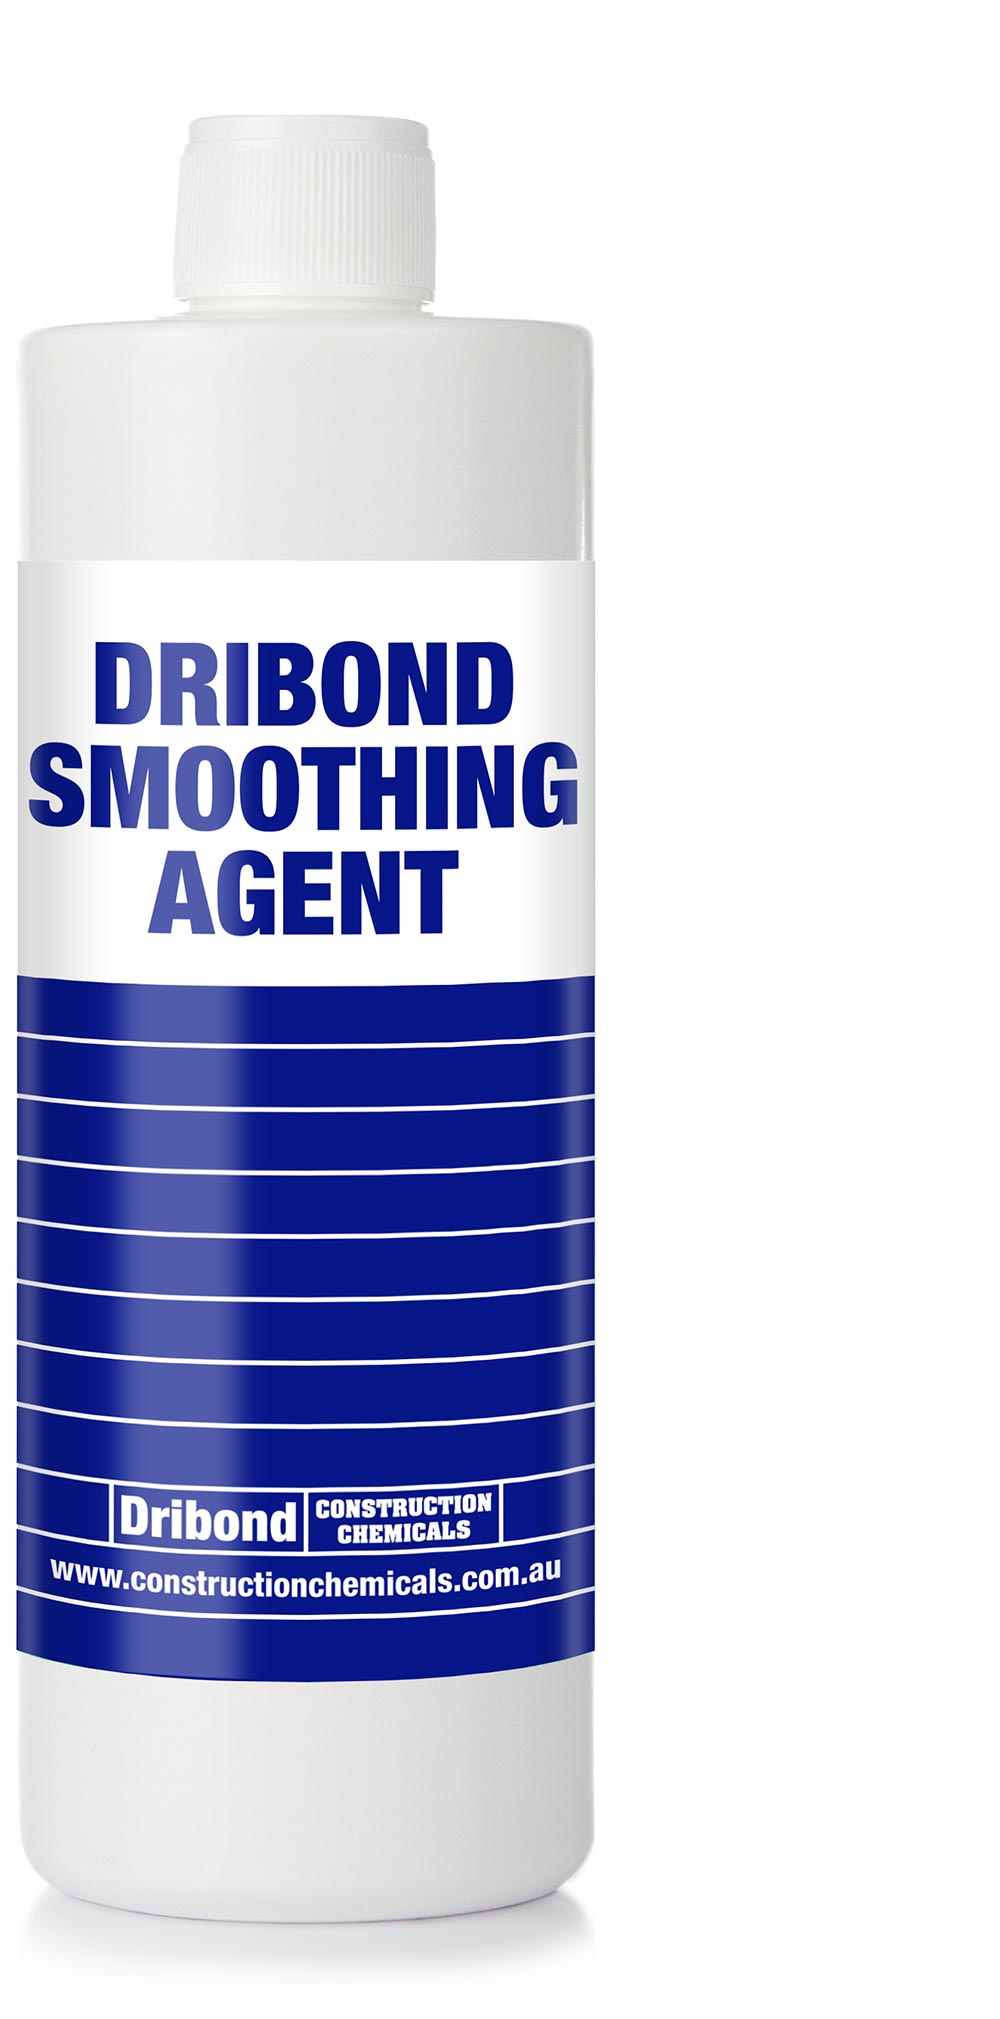 Dribond Smoothing Agent